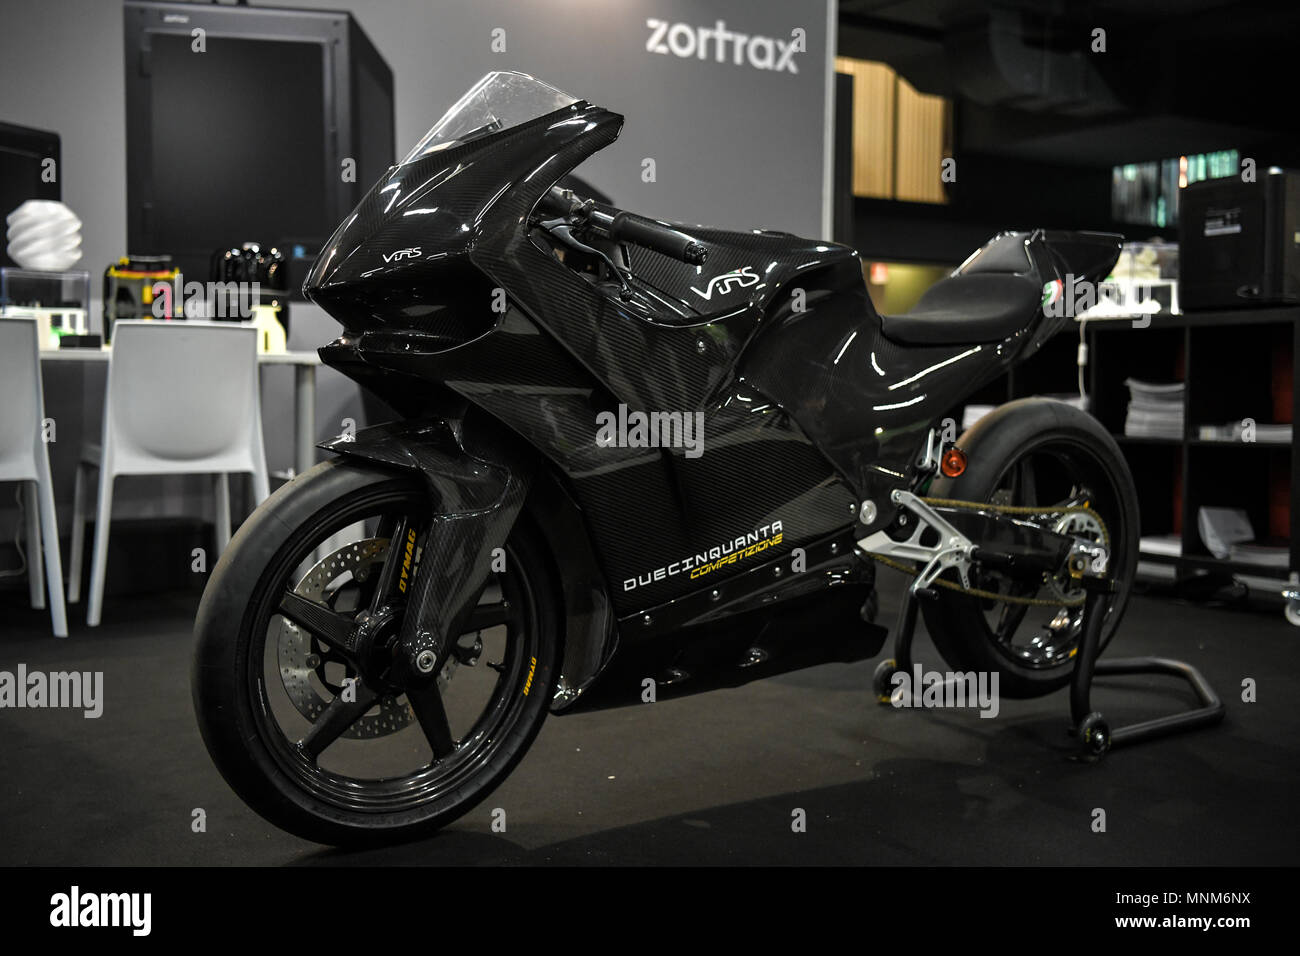 Milan, Italy - 17 May 2018: Duecinquanta Competizione, a 3d printed motorbike designed by Vins Motors is on display during the Technology Hub 2018. Th - Stock Image